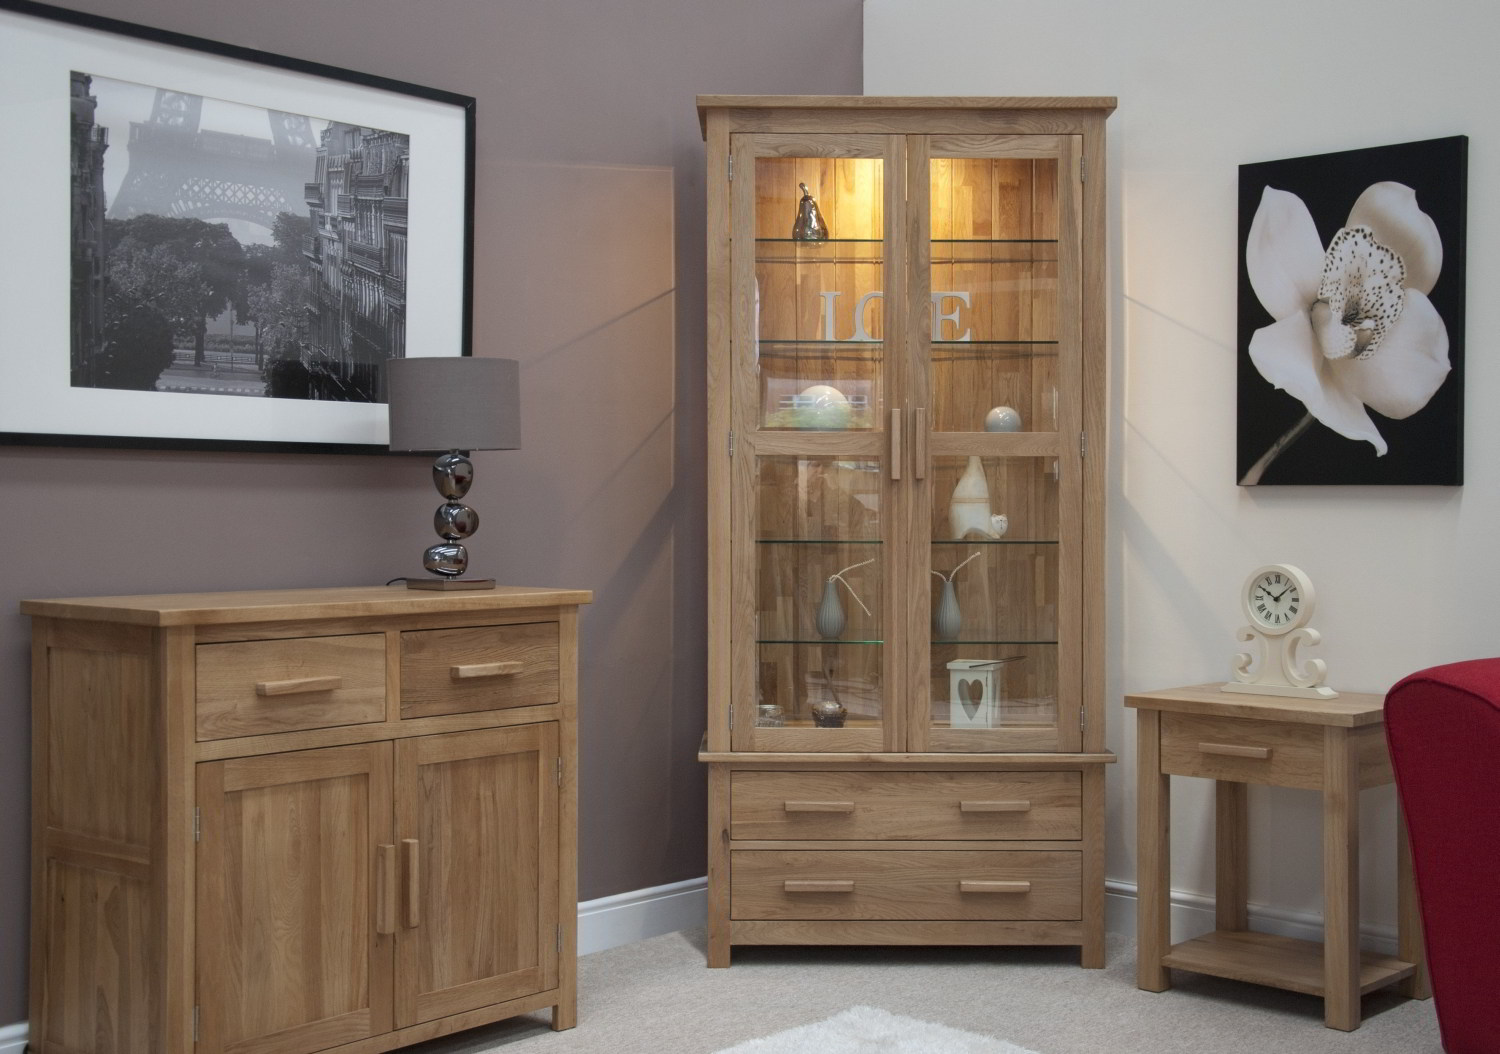 Details About Eton Solid Oak Living Room Furniture Glazed Display Cabinet Cupboard